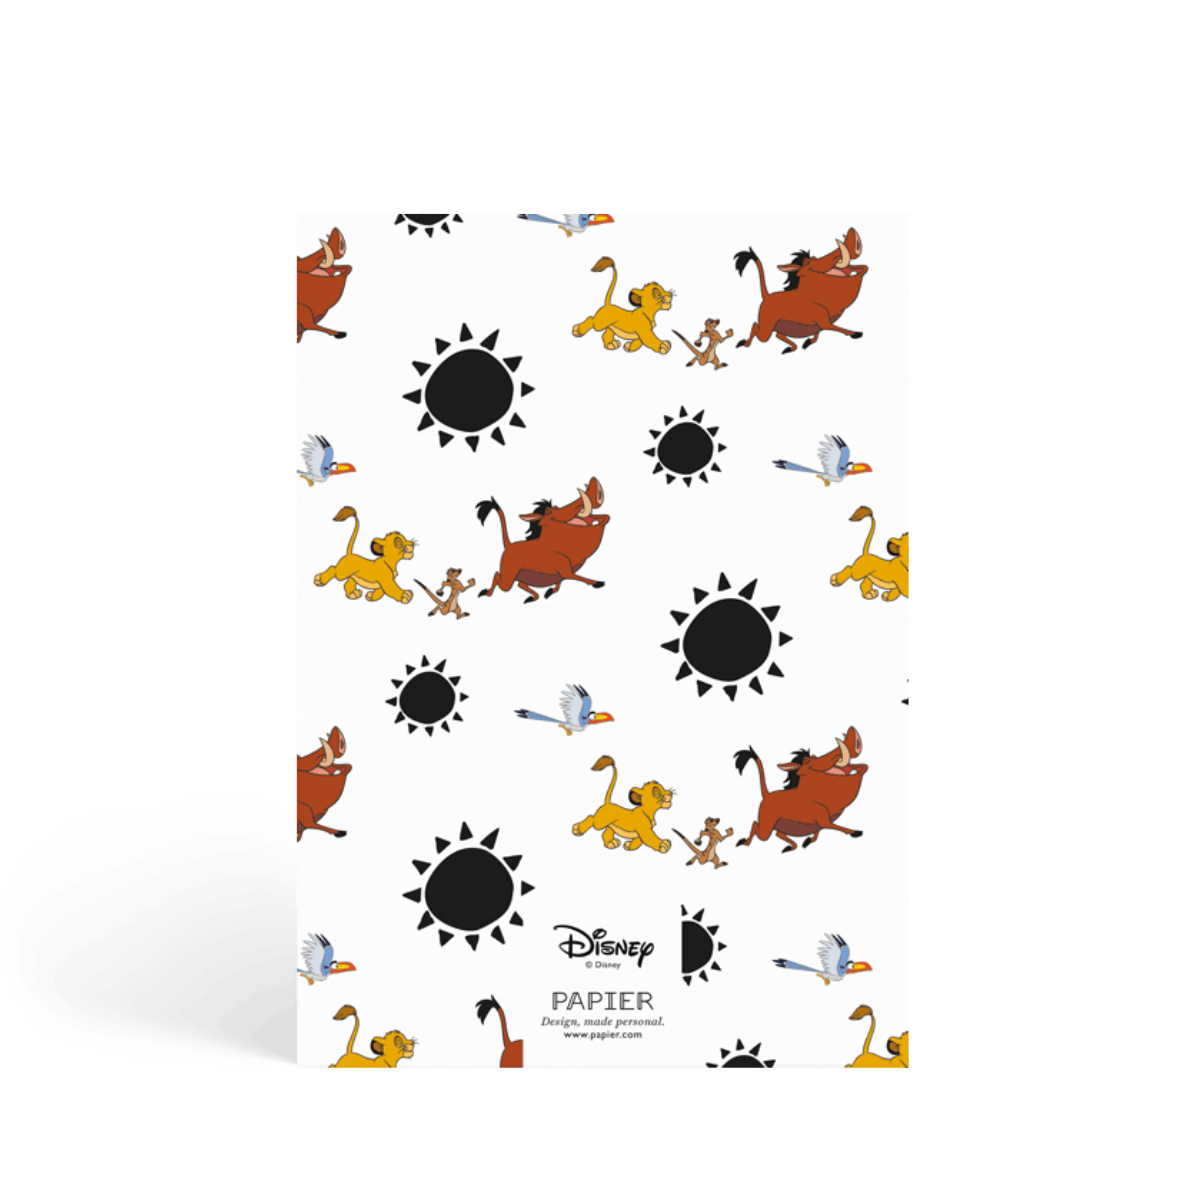 Https%3a%2f%2fwww.papier.com%2fproduct image%2f89851%2f5%2fthe lion king 22490 back 1569857119.png?ixlib=rb 1.1